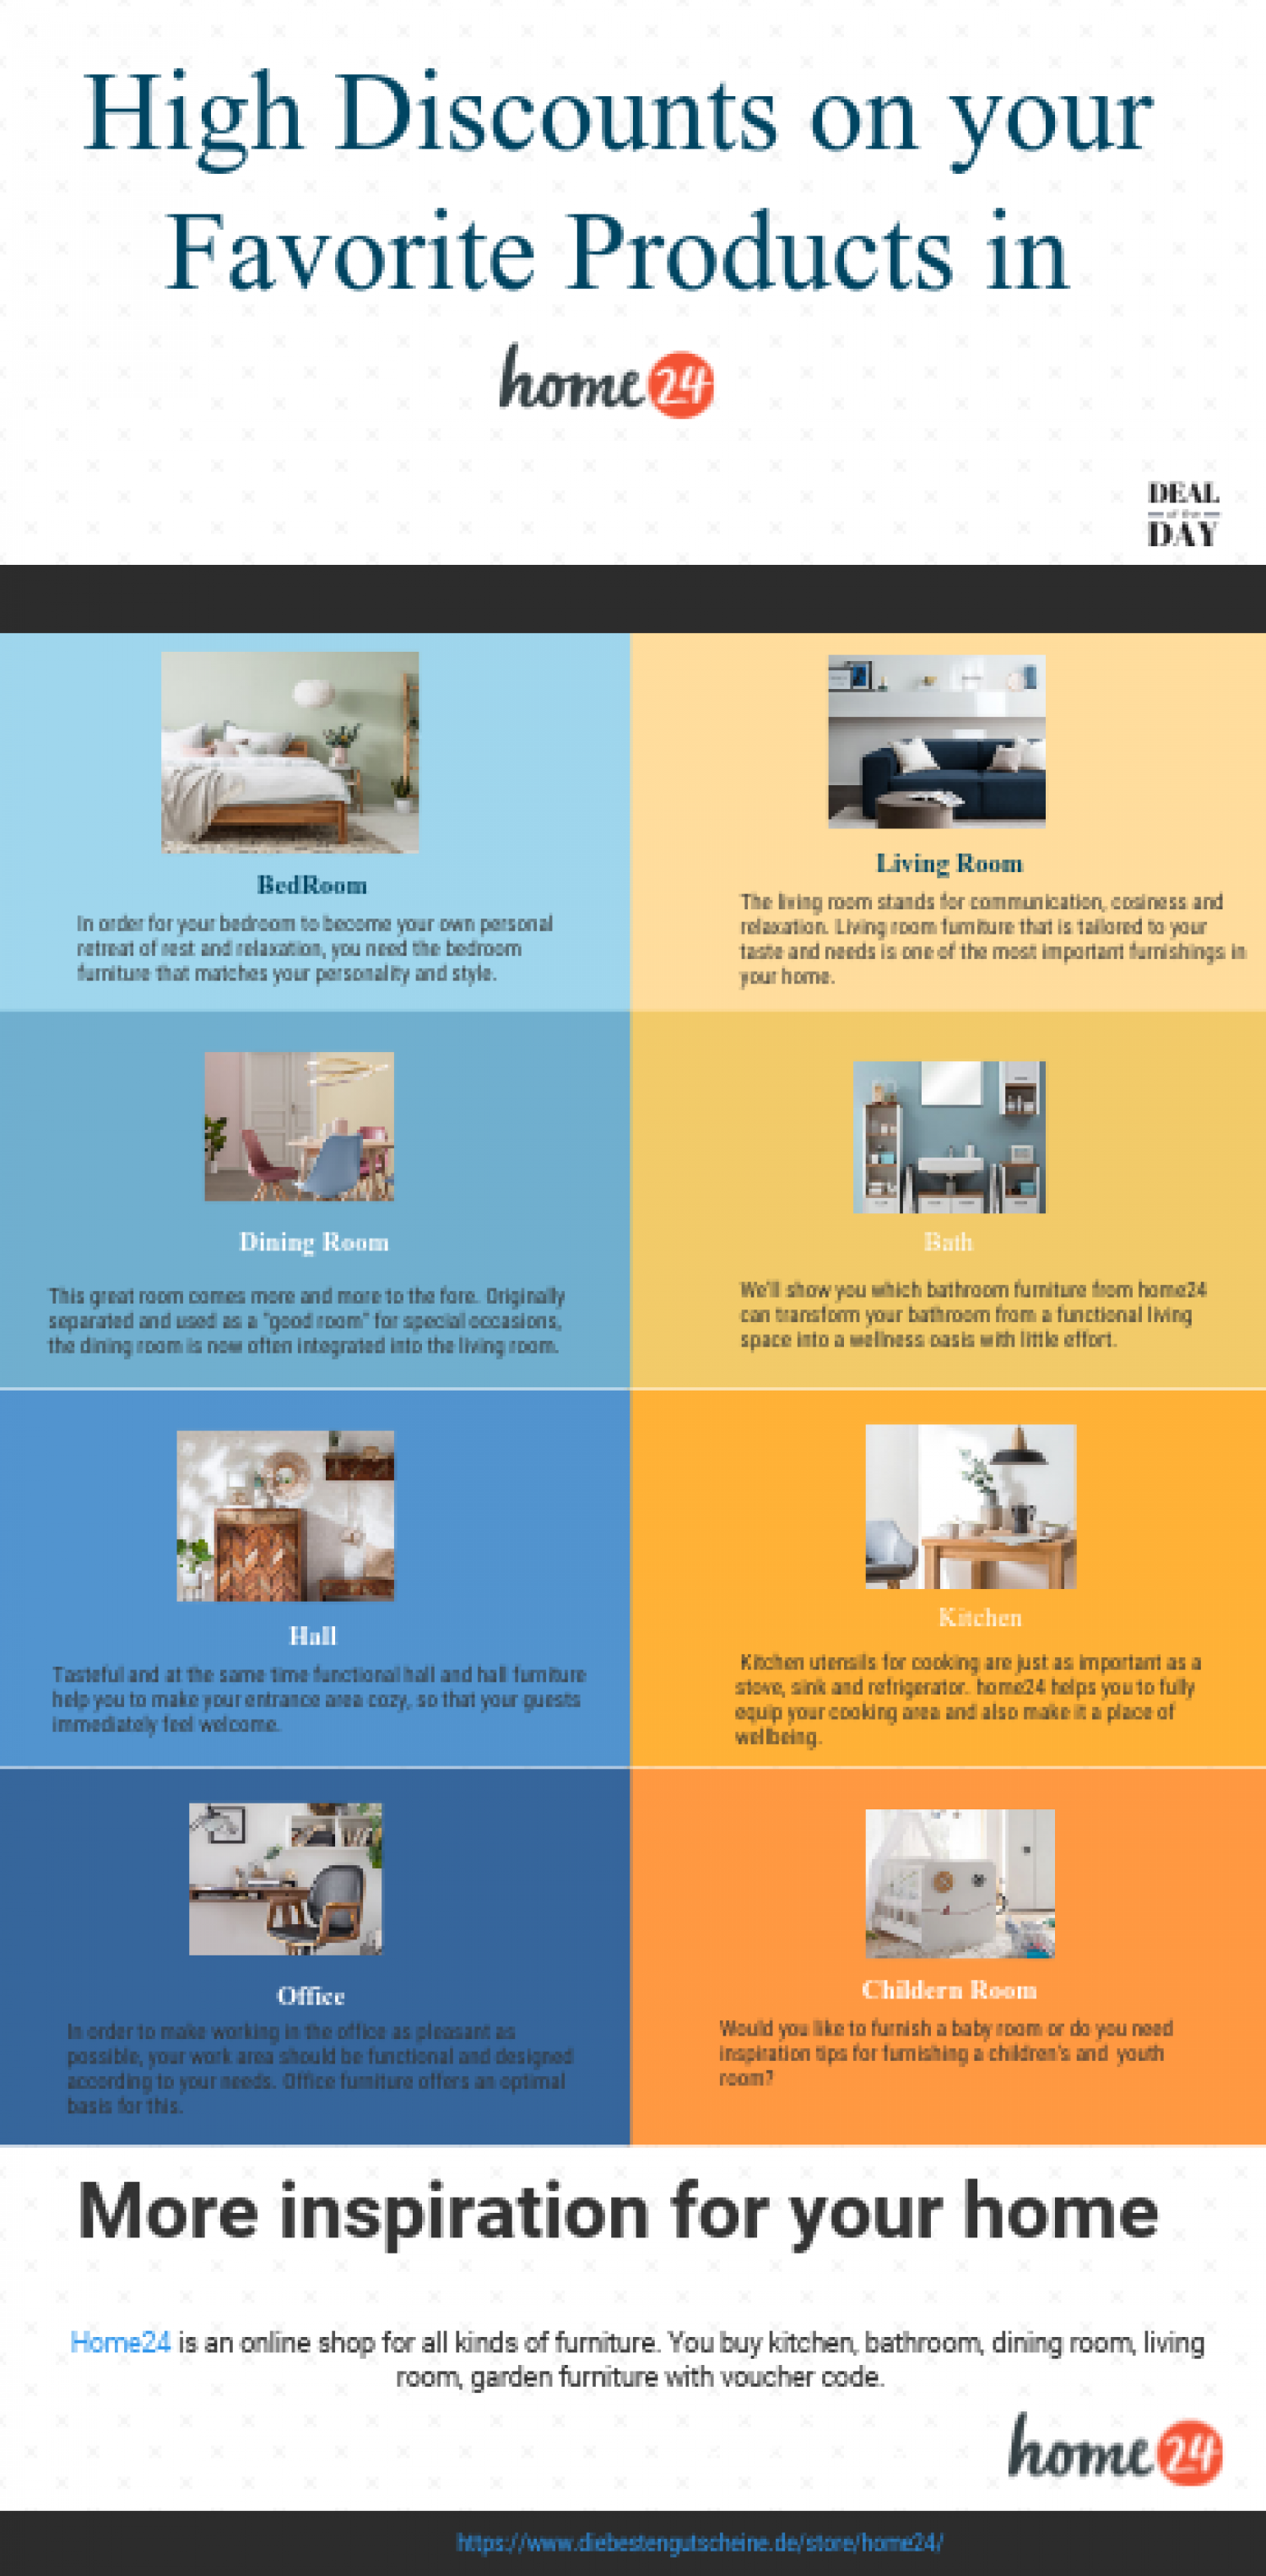 High Discounts on your Favorite Products - Home24 Infographic